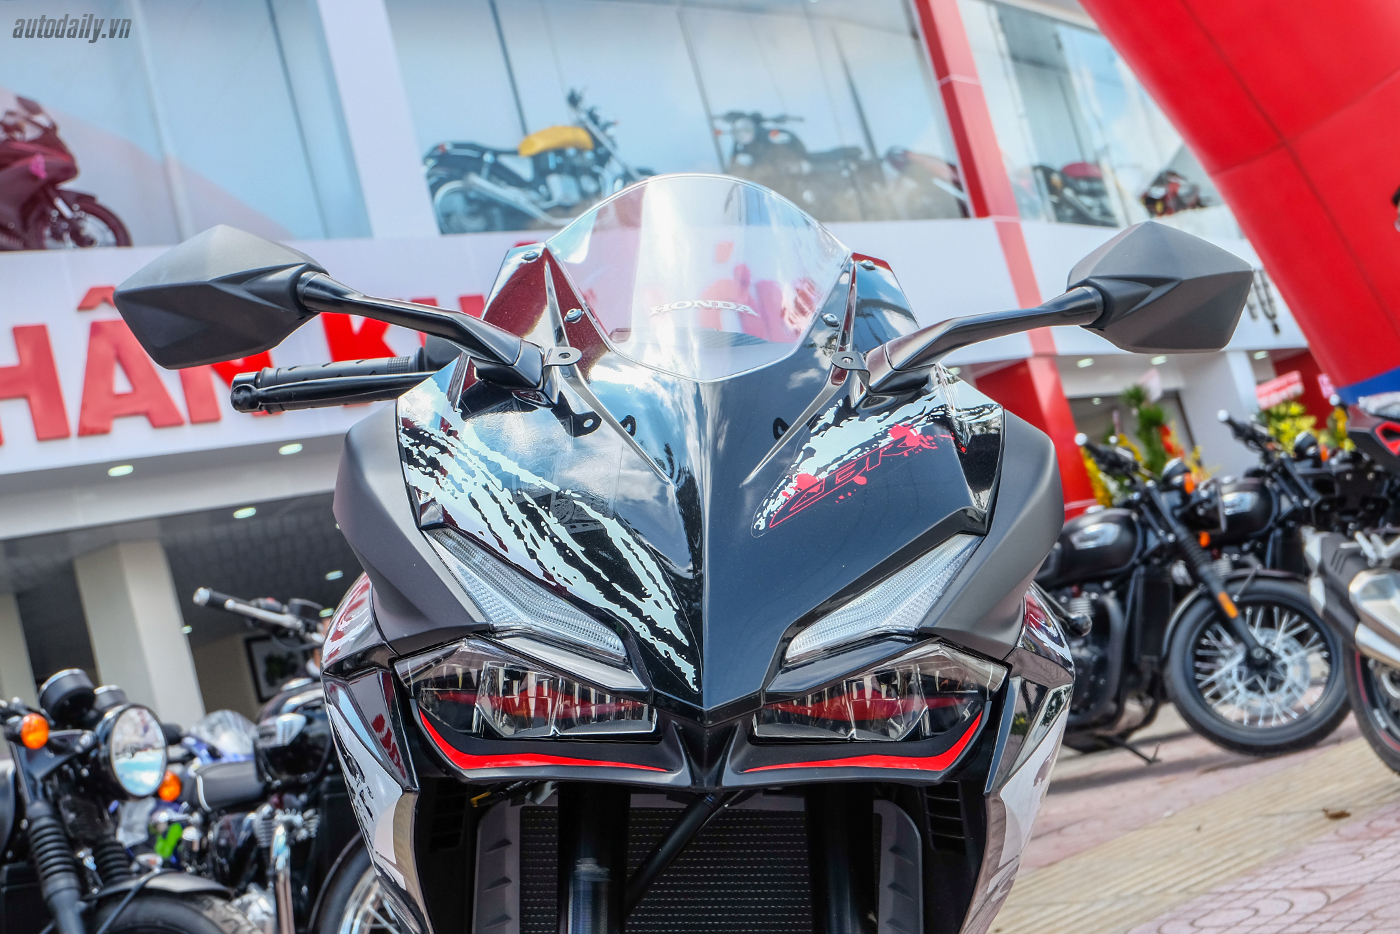 honda-cbr250rr-the-art-of-kabuki-2017-12.jpg